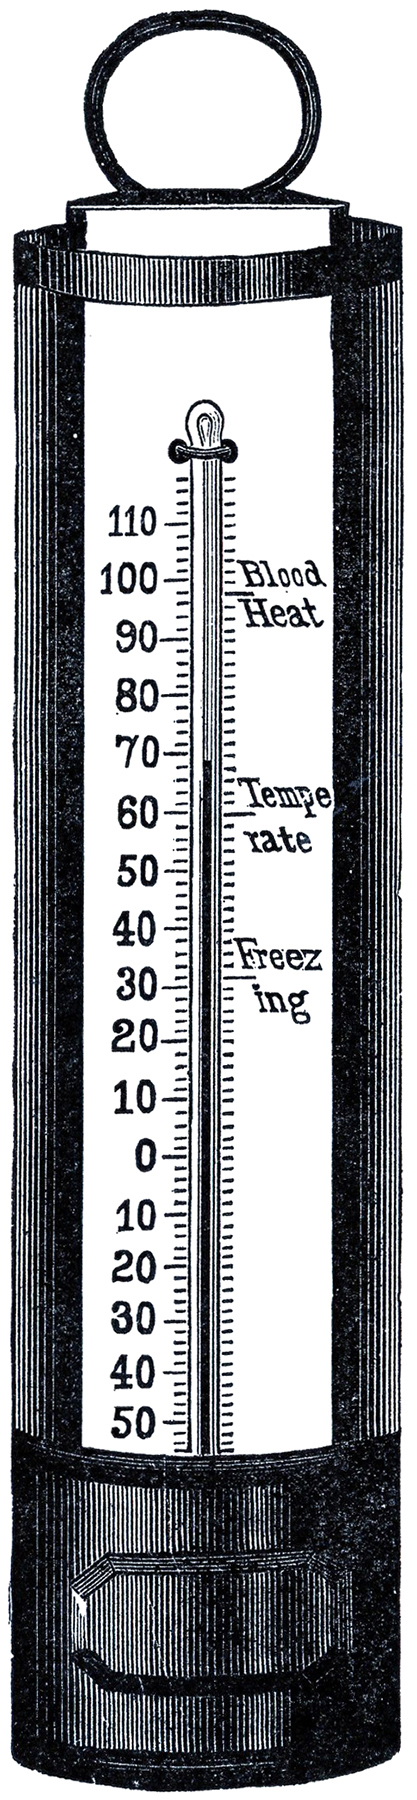 Free Thermometer Clip Art.